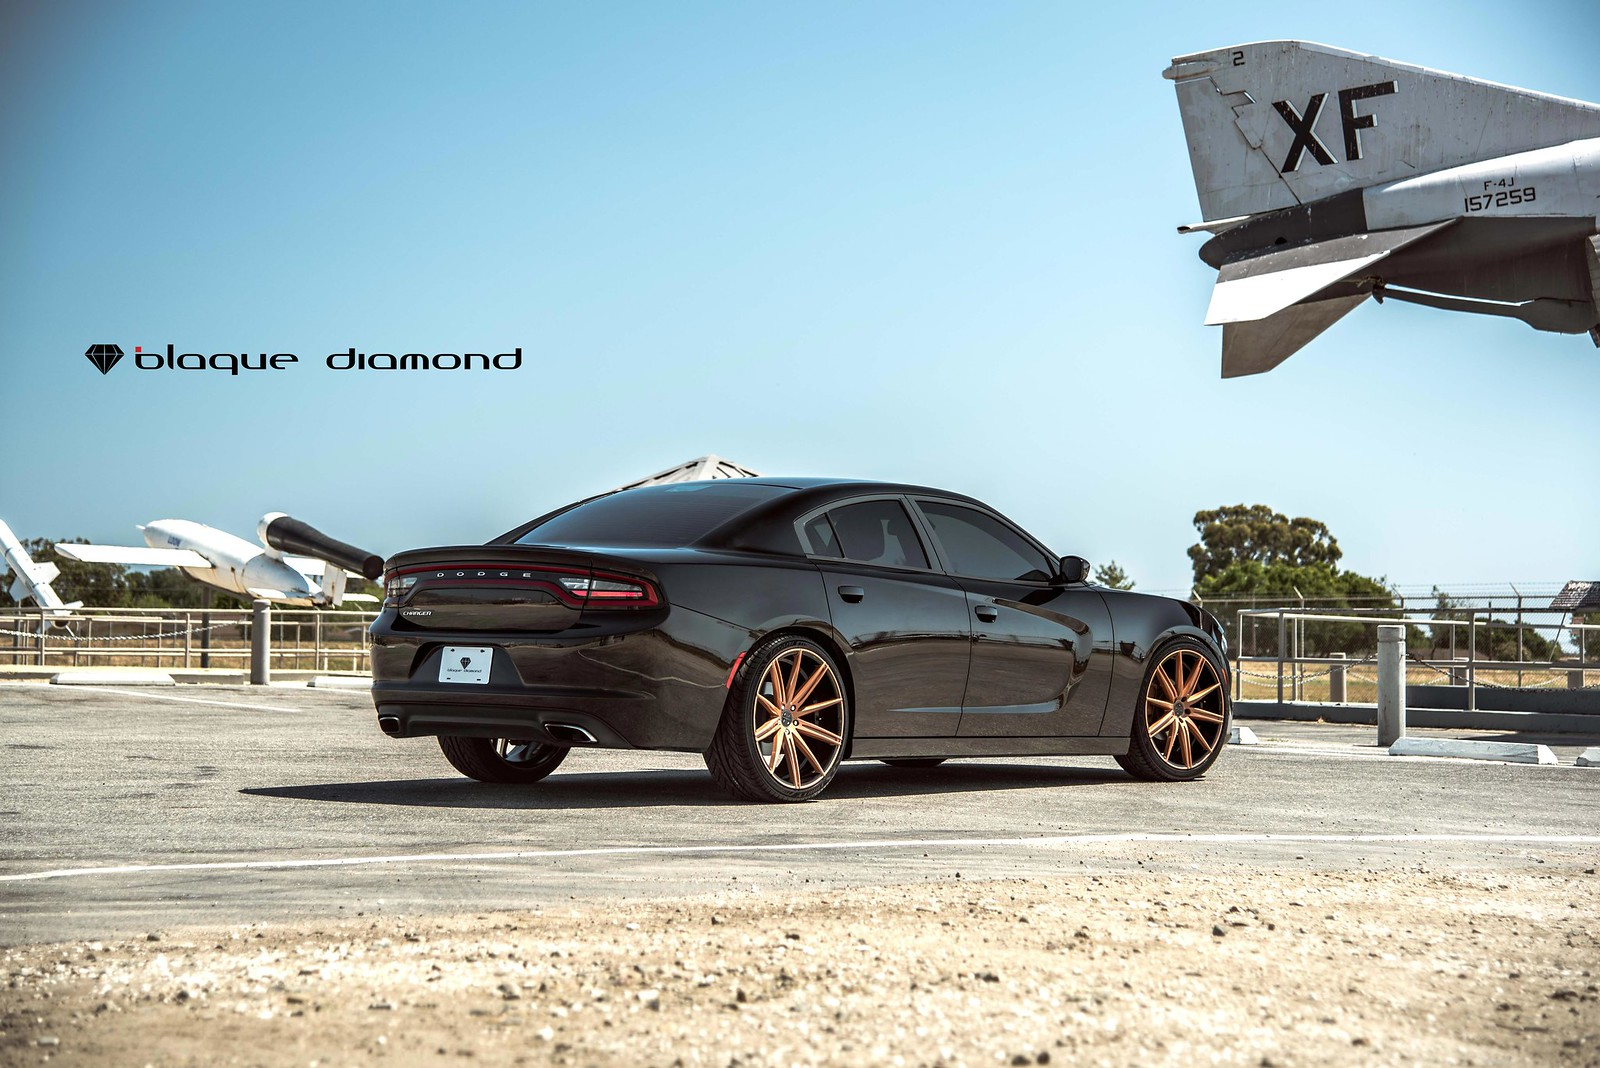 2014_Dodge_Charger_BD9_22_inch_Penny_Copper_Gloss_Black_Barrel